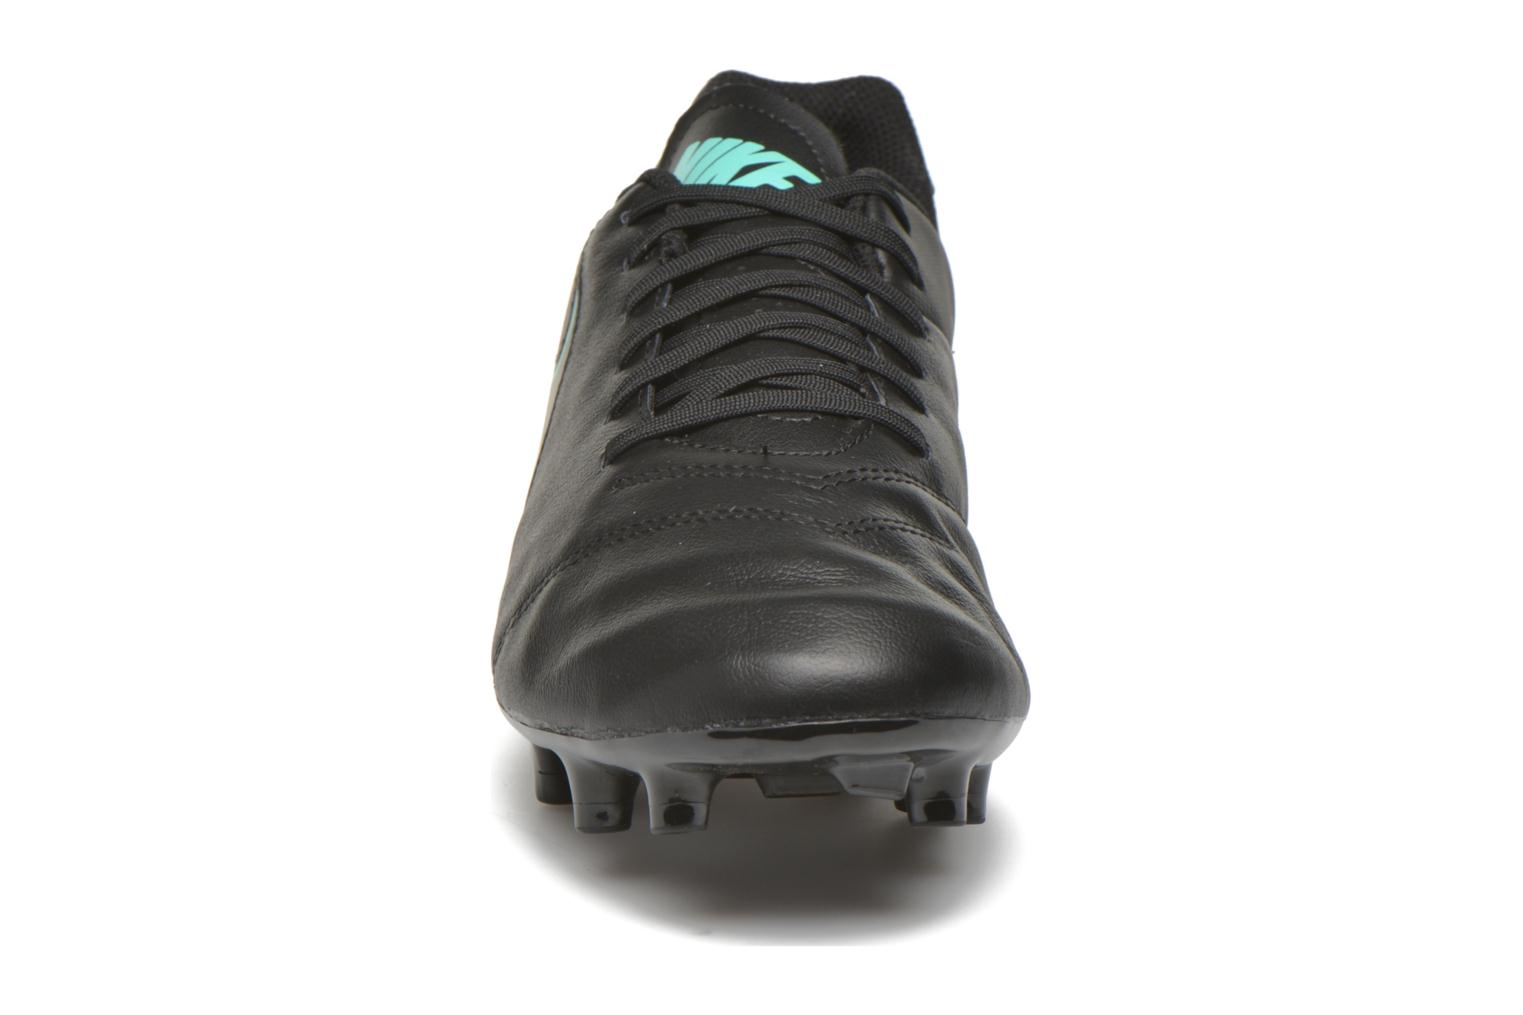 Tiempo Genio II Leather Fg Black/Black-Hyper Turq